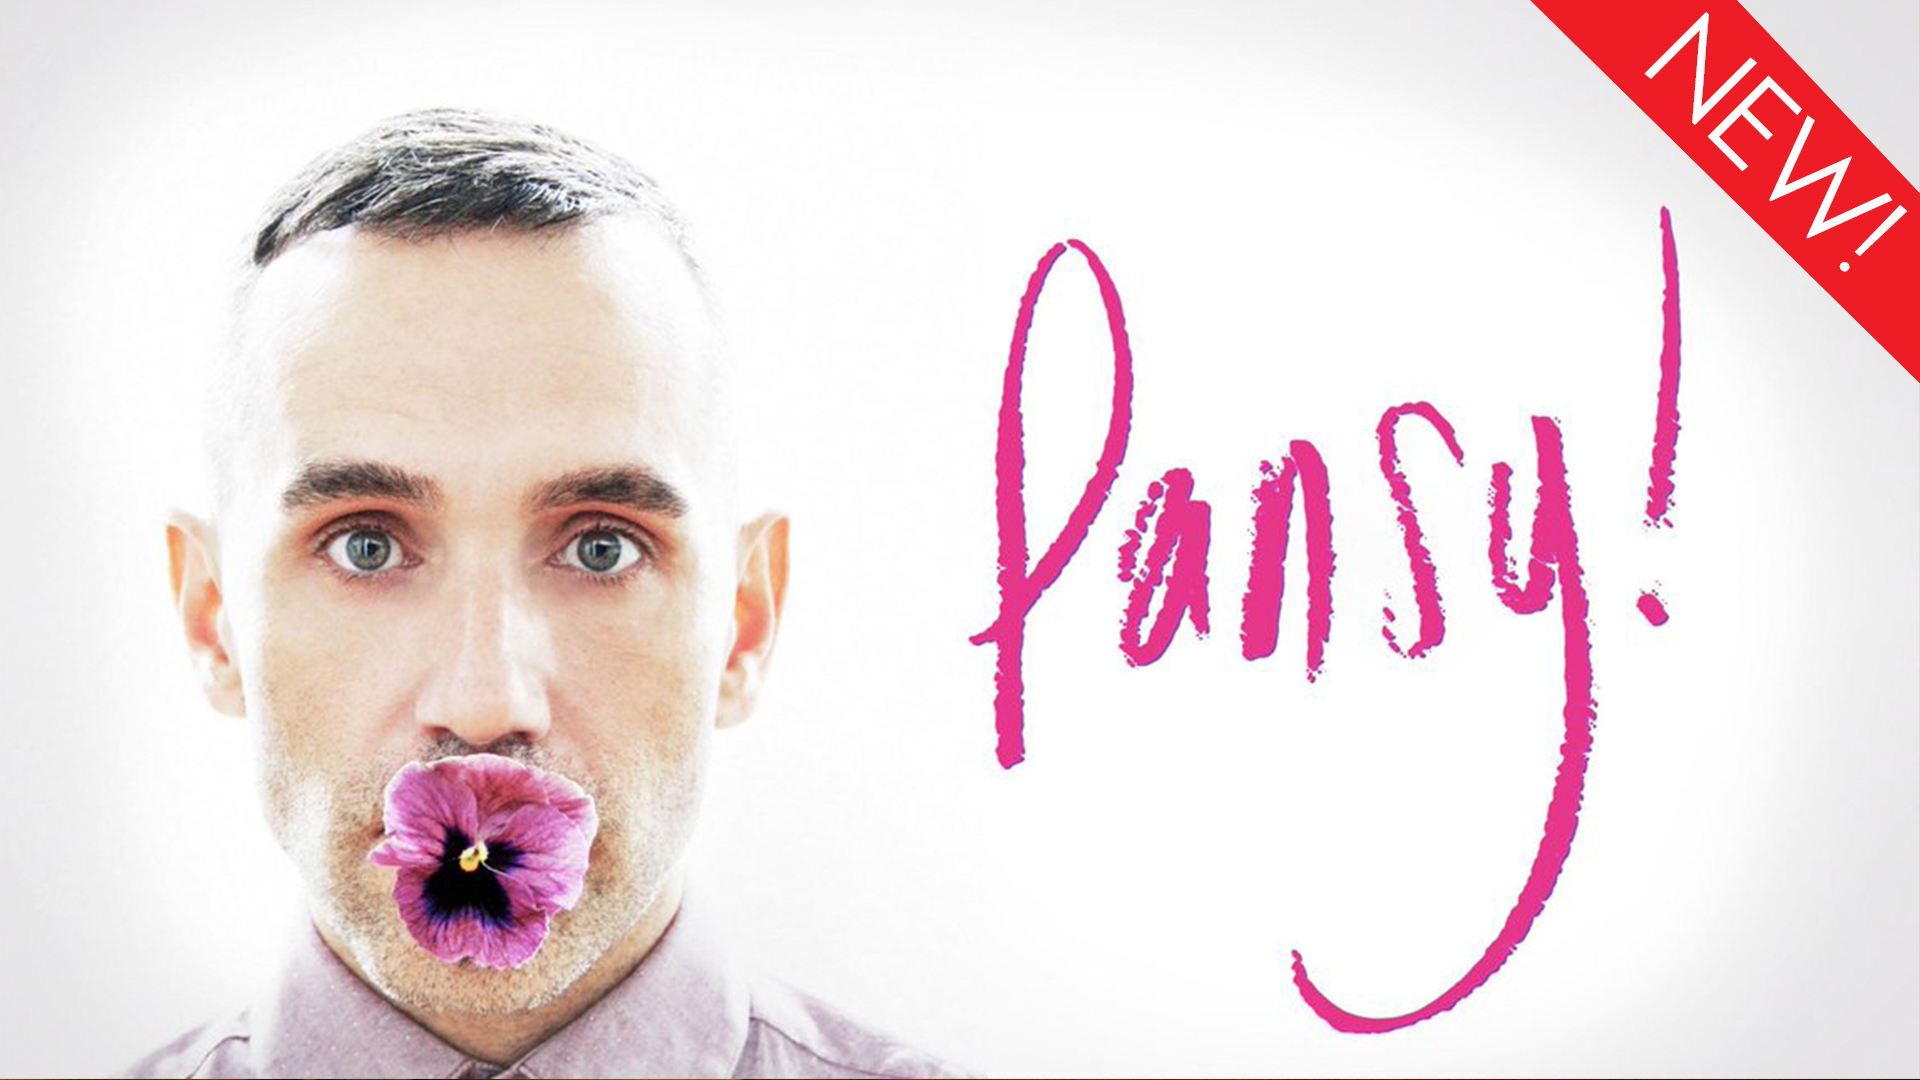 This is the art for the gay documentary, 'Pansy'